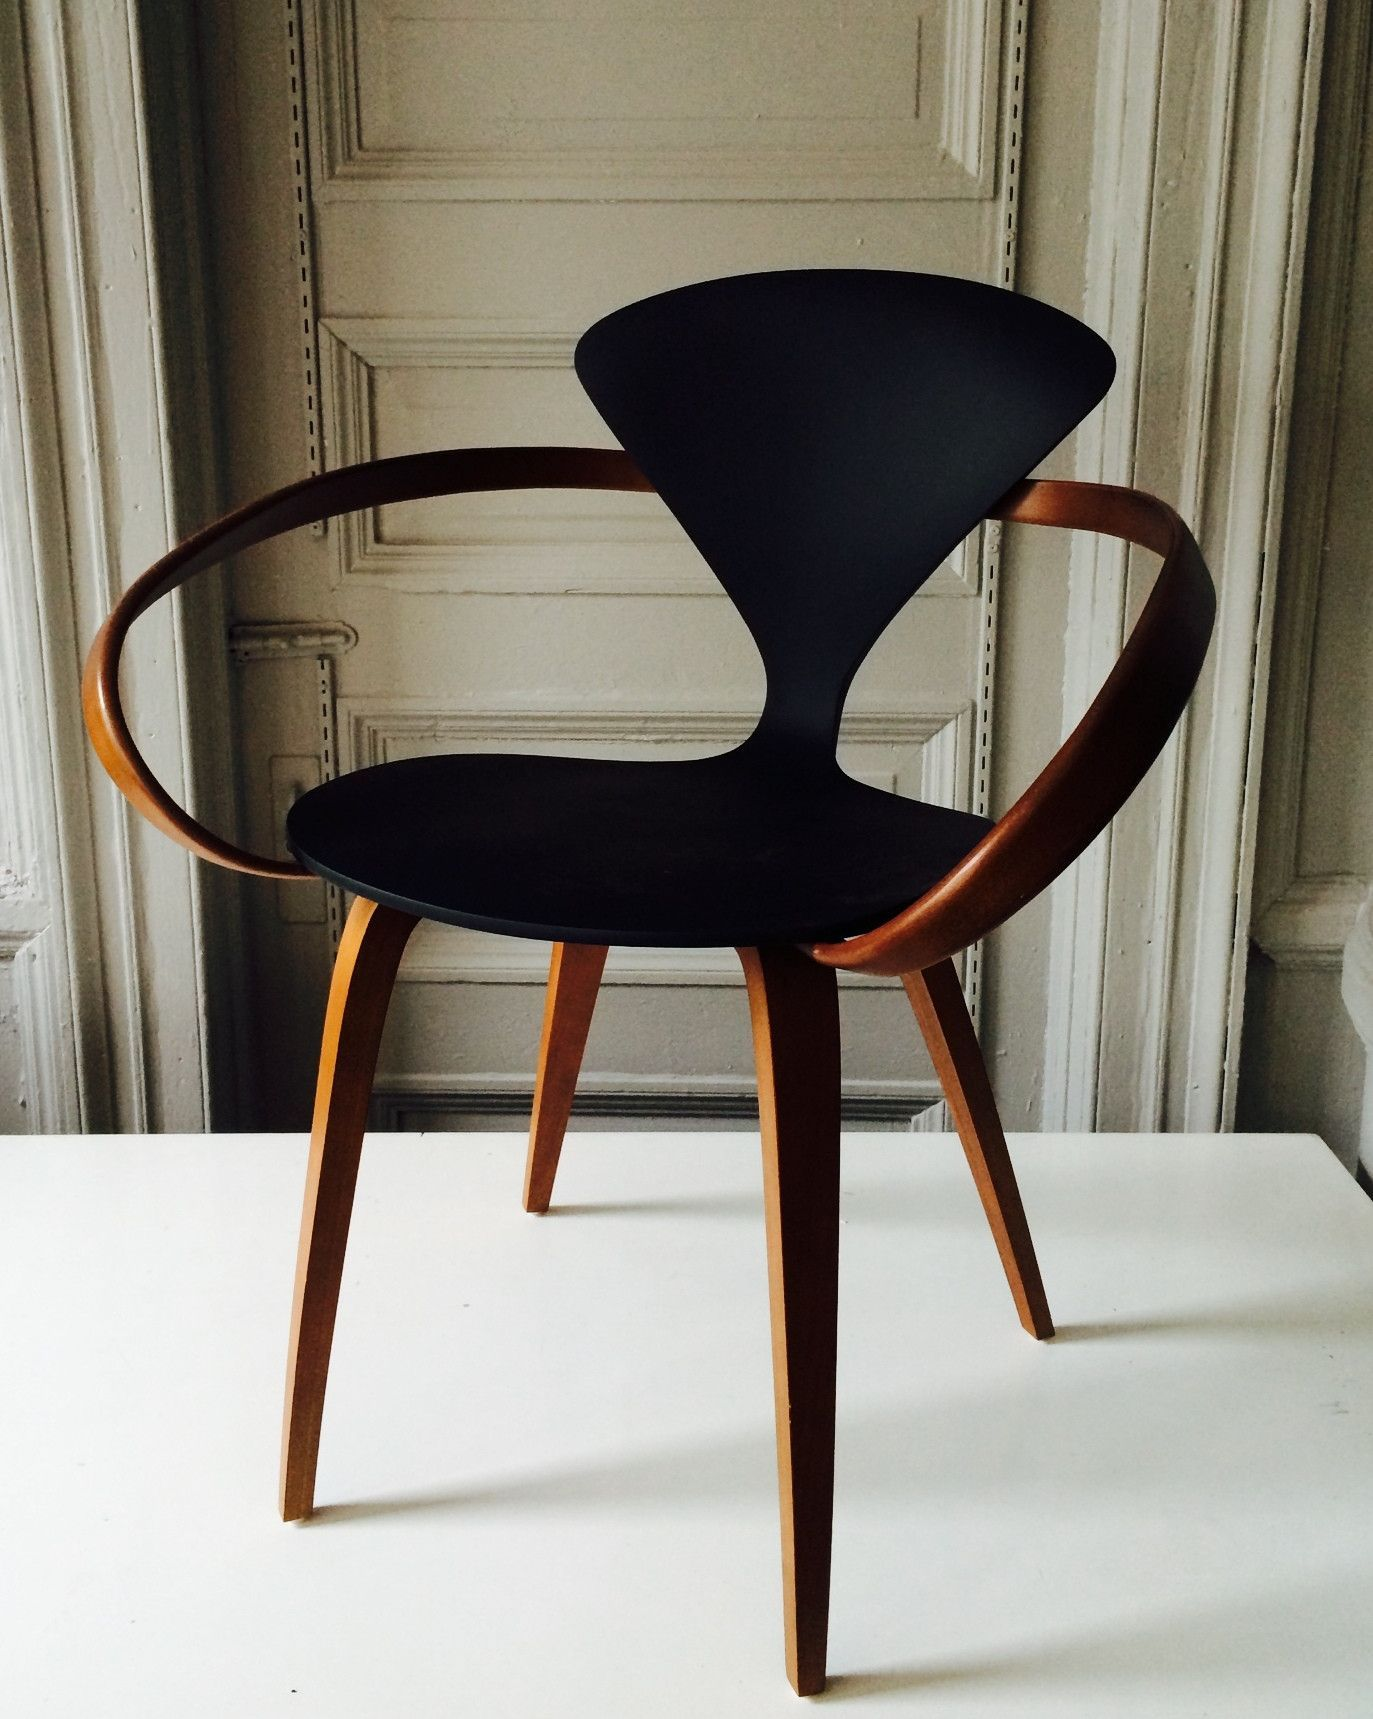 Form Black Amp Wood Cherner Armchair The Way That The